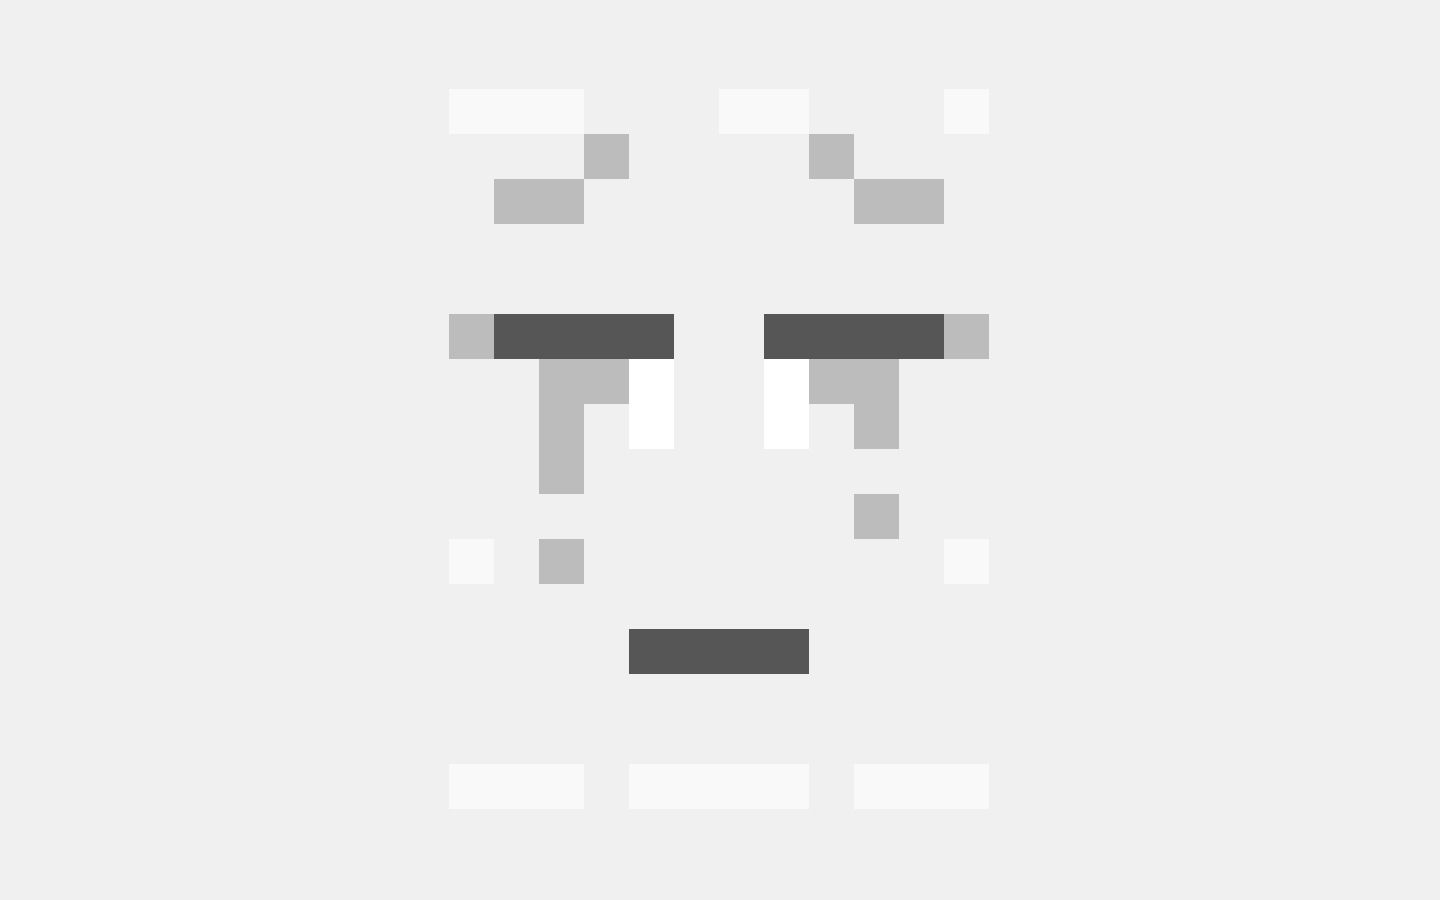 Minecraft Characters Faces Ghast Template Minecraft Pinterest Wallpaper